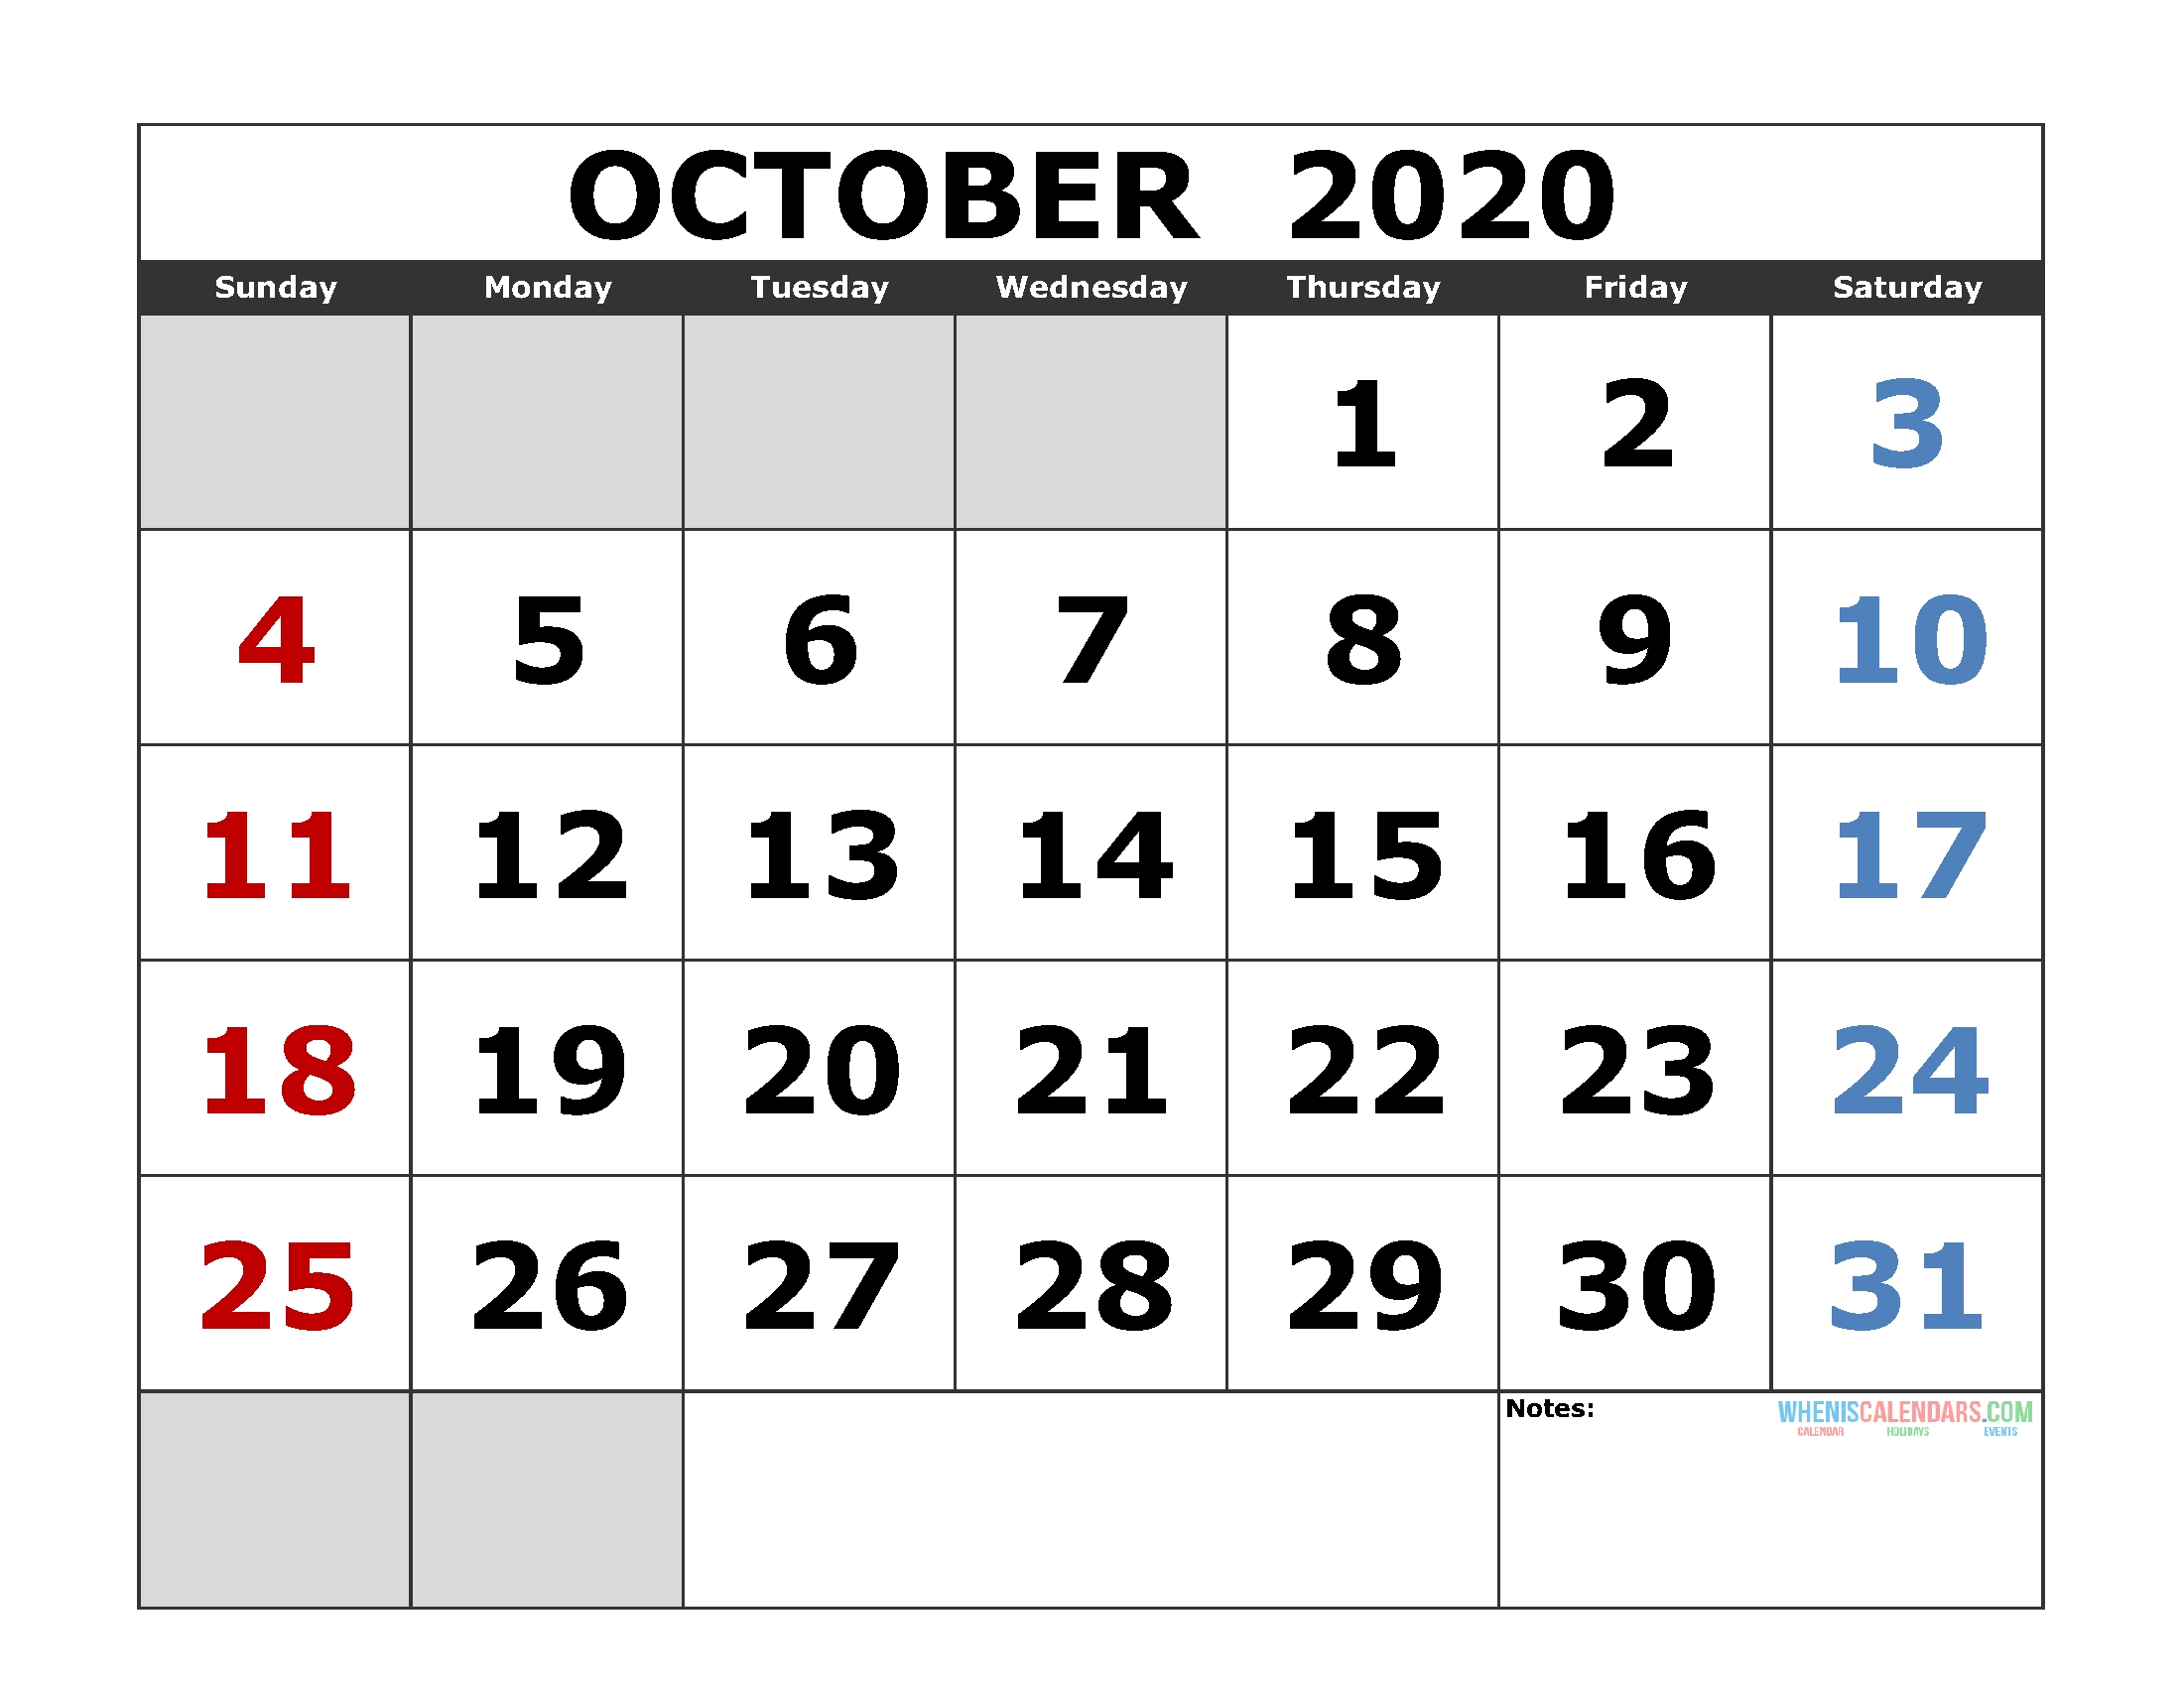 October 2020 Printable Calendar Template Excel, Pdf, Image-October 2020 Jewish Holidays